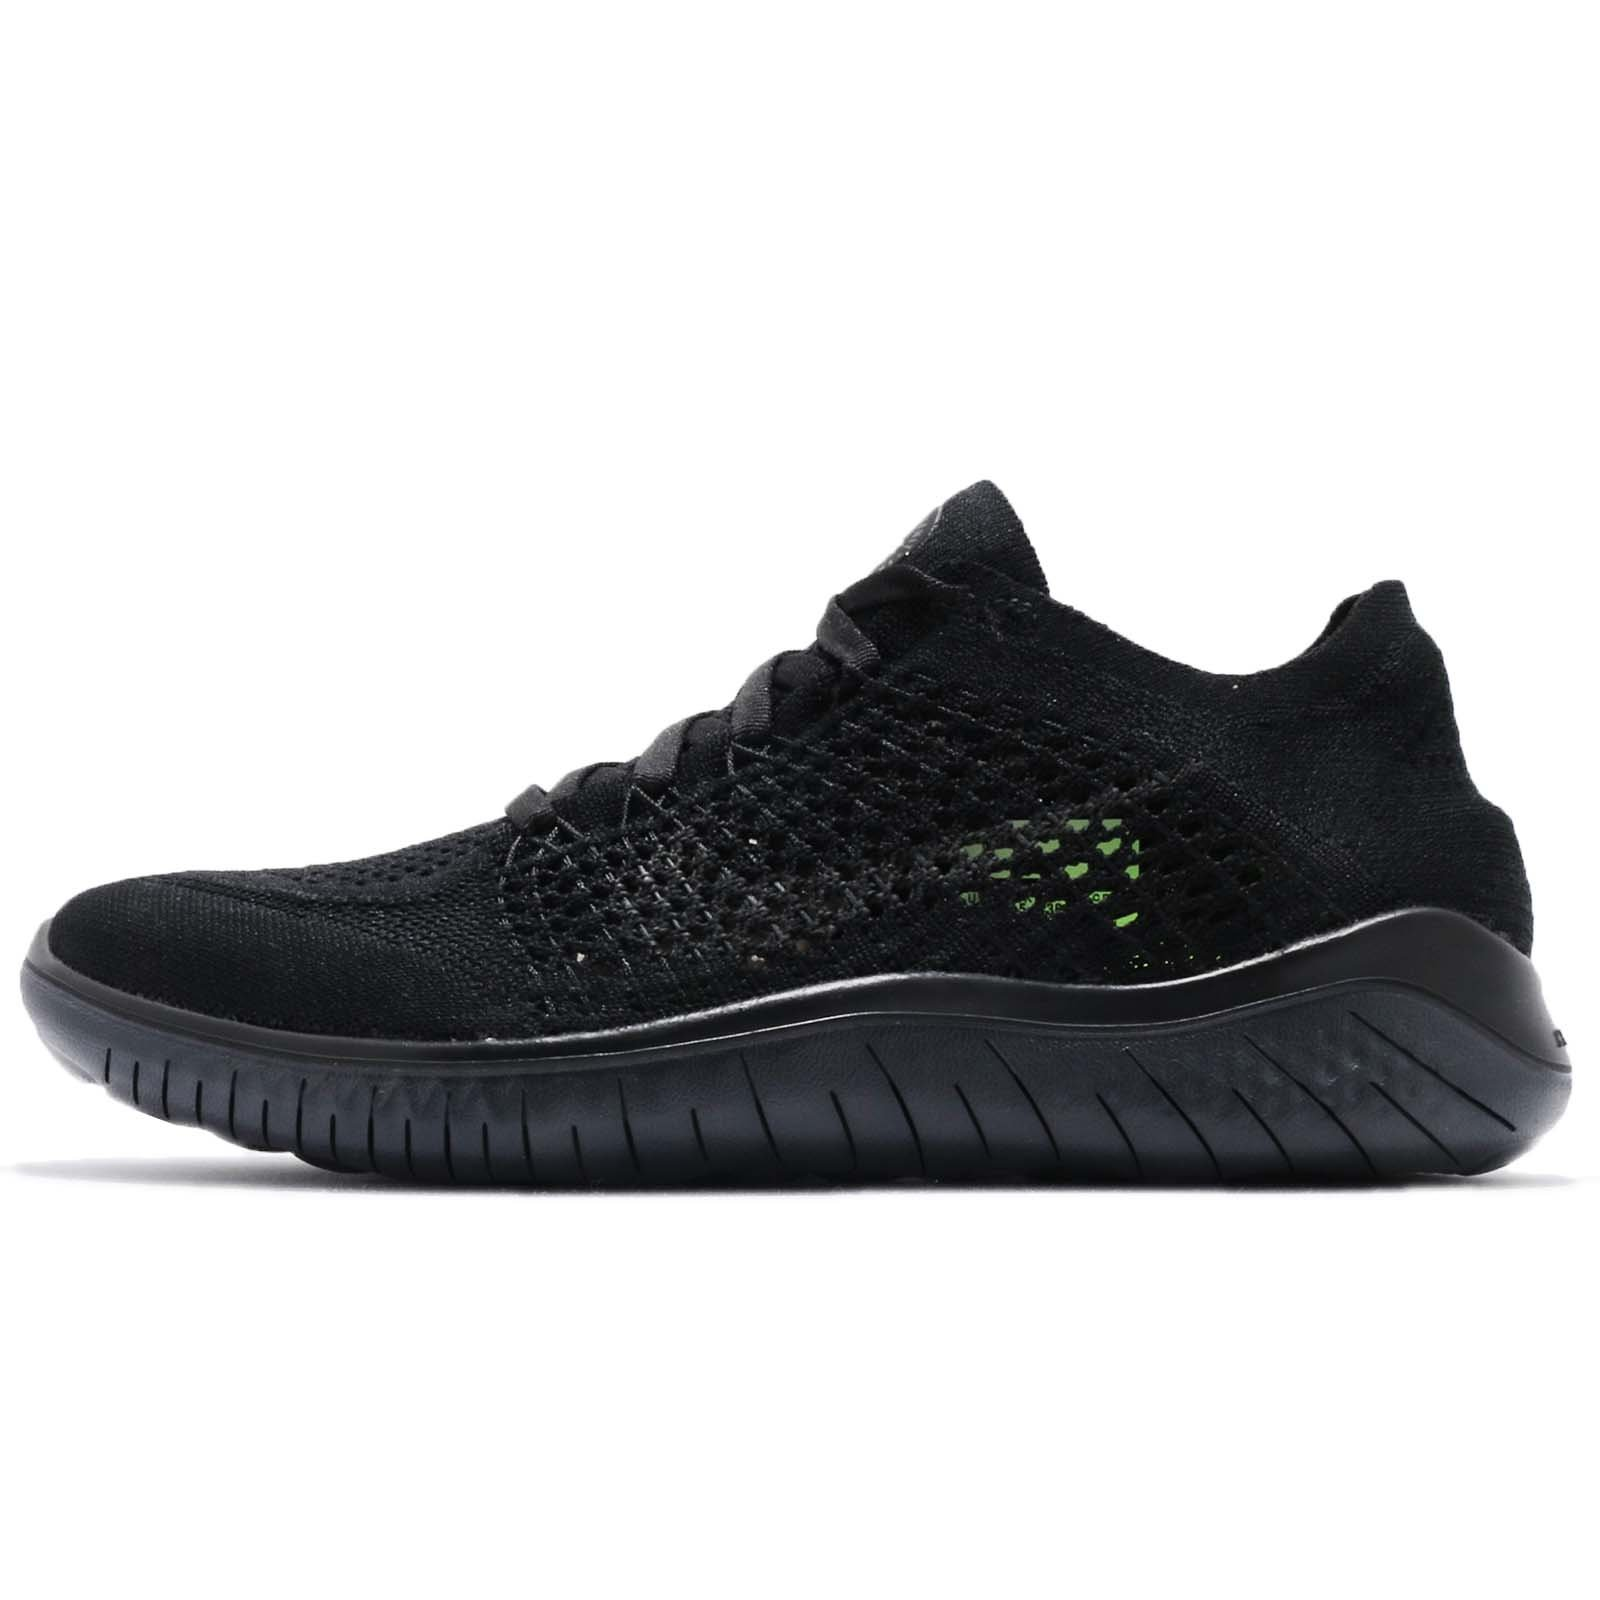 a98ba7f1435 Galleon - NIKE Women s Free RN Flyknit Running Shoe Black Anthracite 8.5